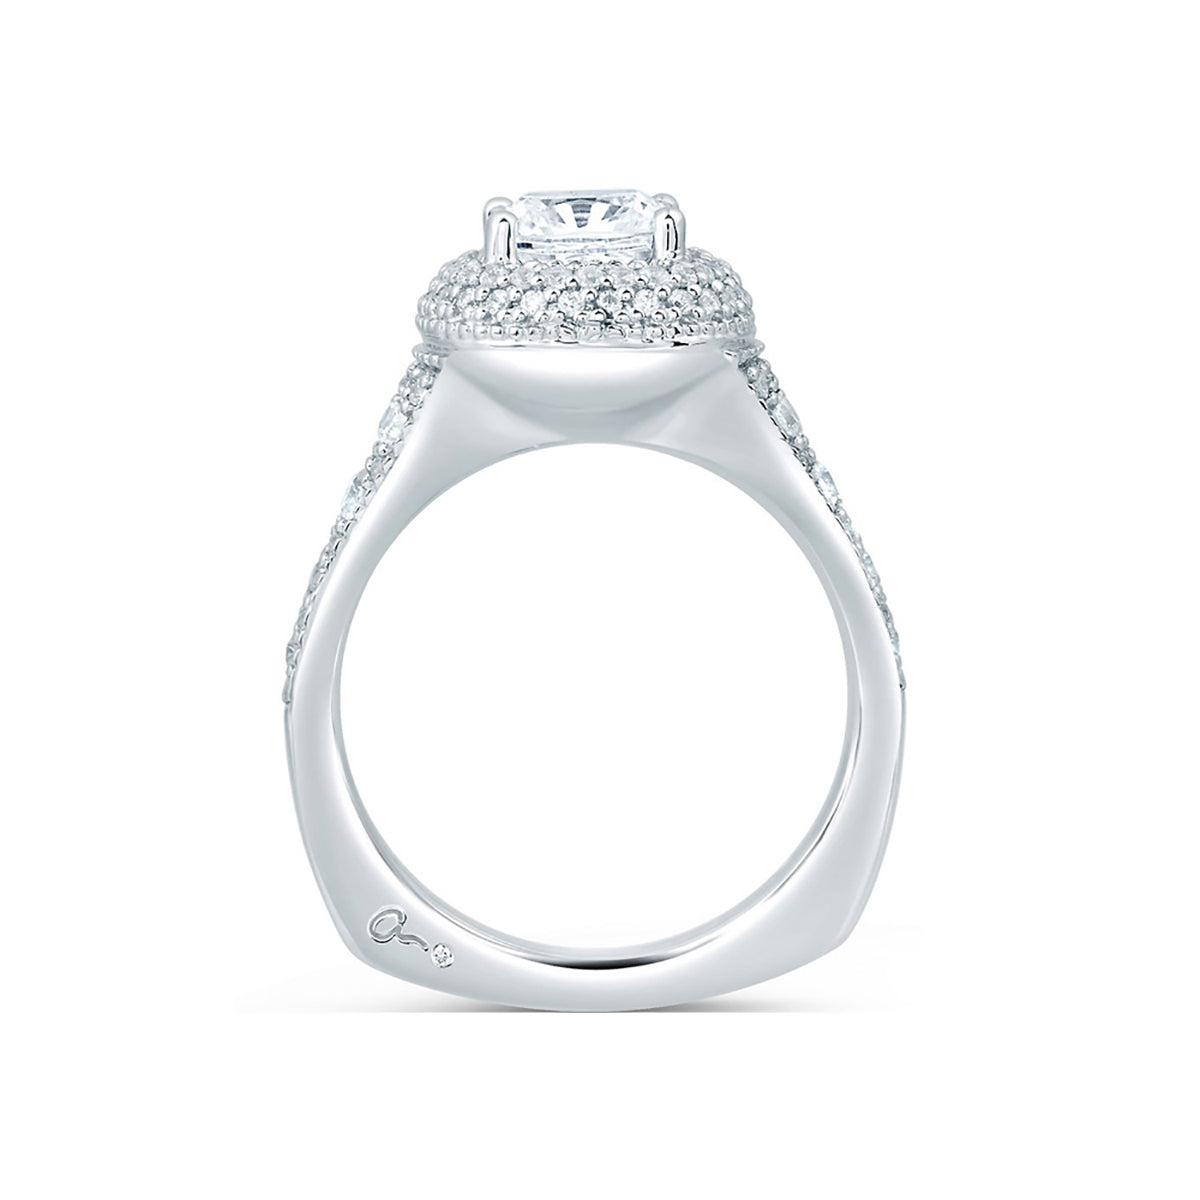 A.Jaffe Pave Deco Halo with Asscher Cut Center diamond Engagement Ring MES641/212